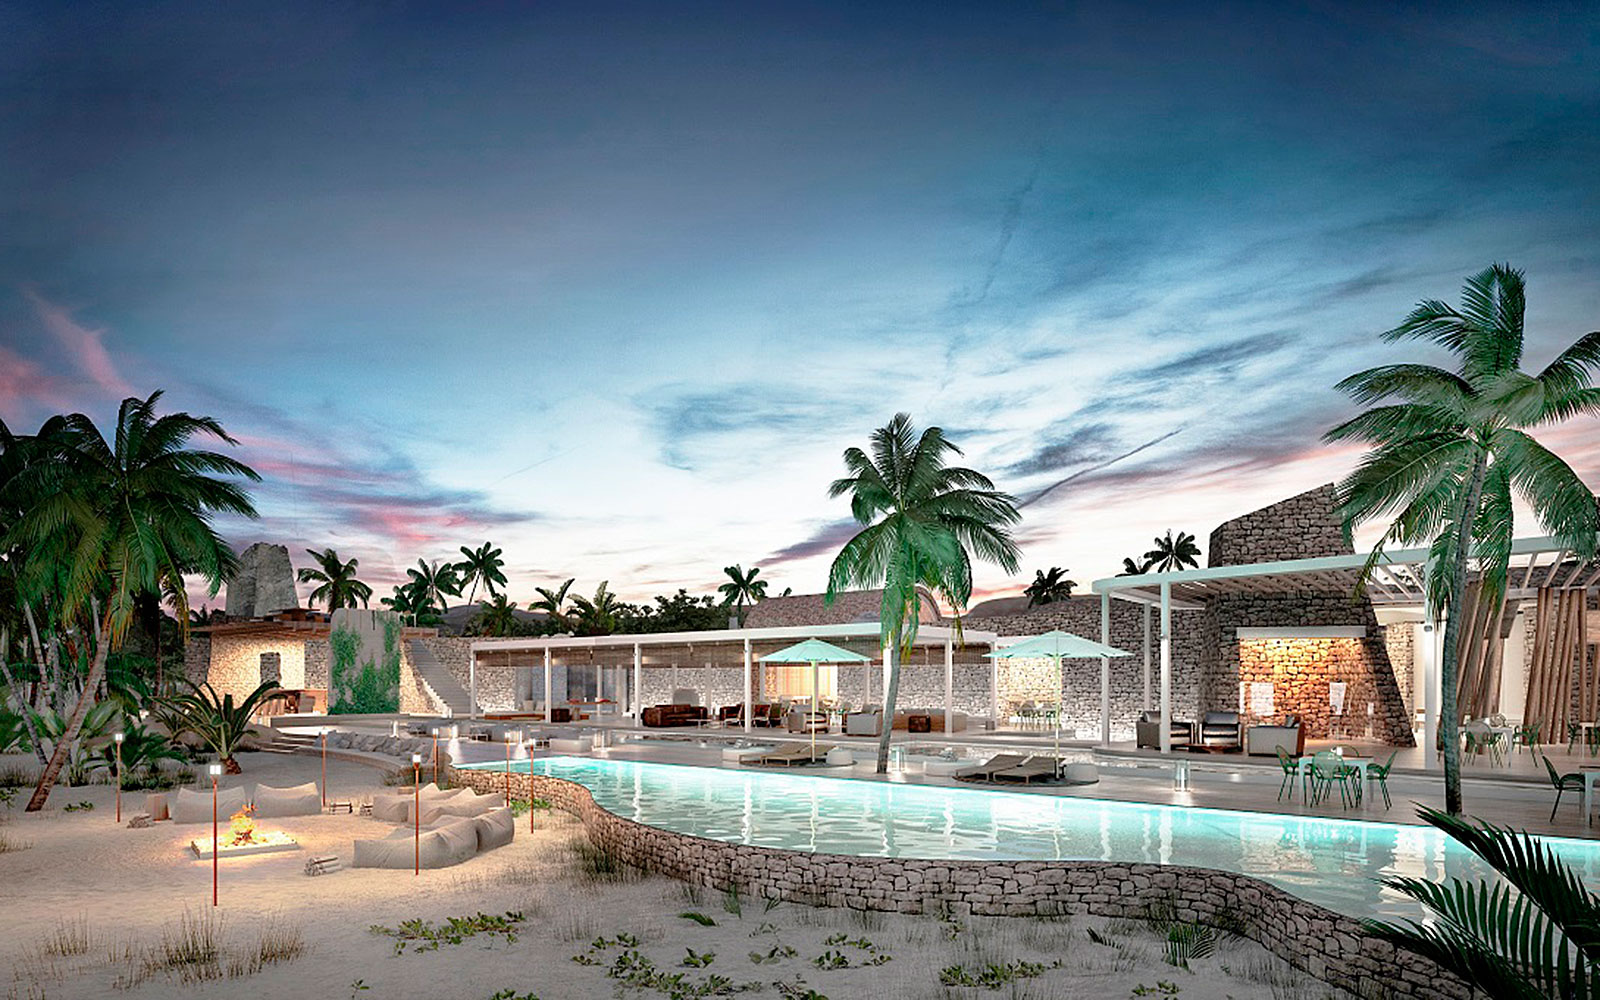 Hotel openings to watch for in 2017